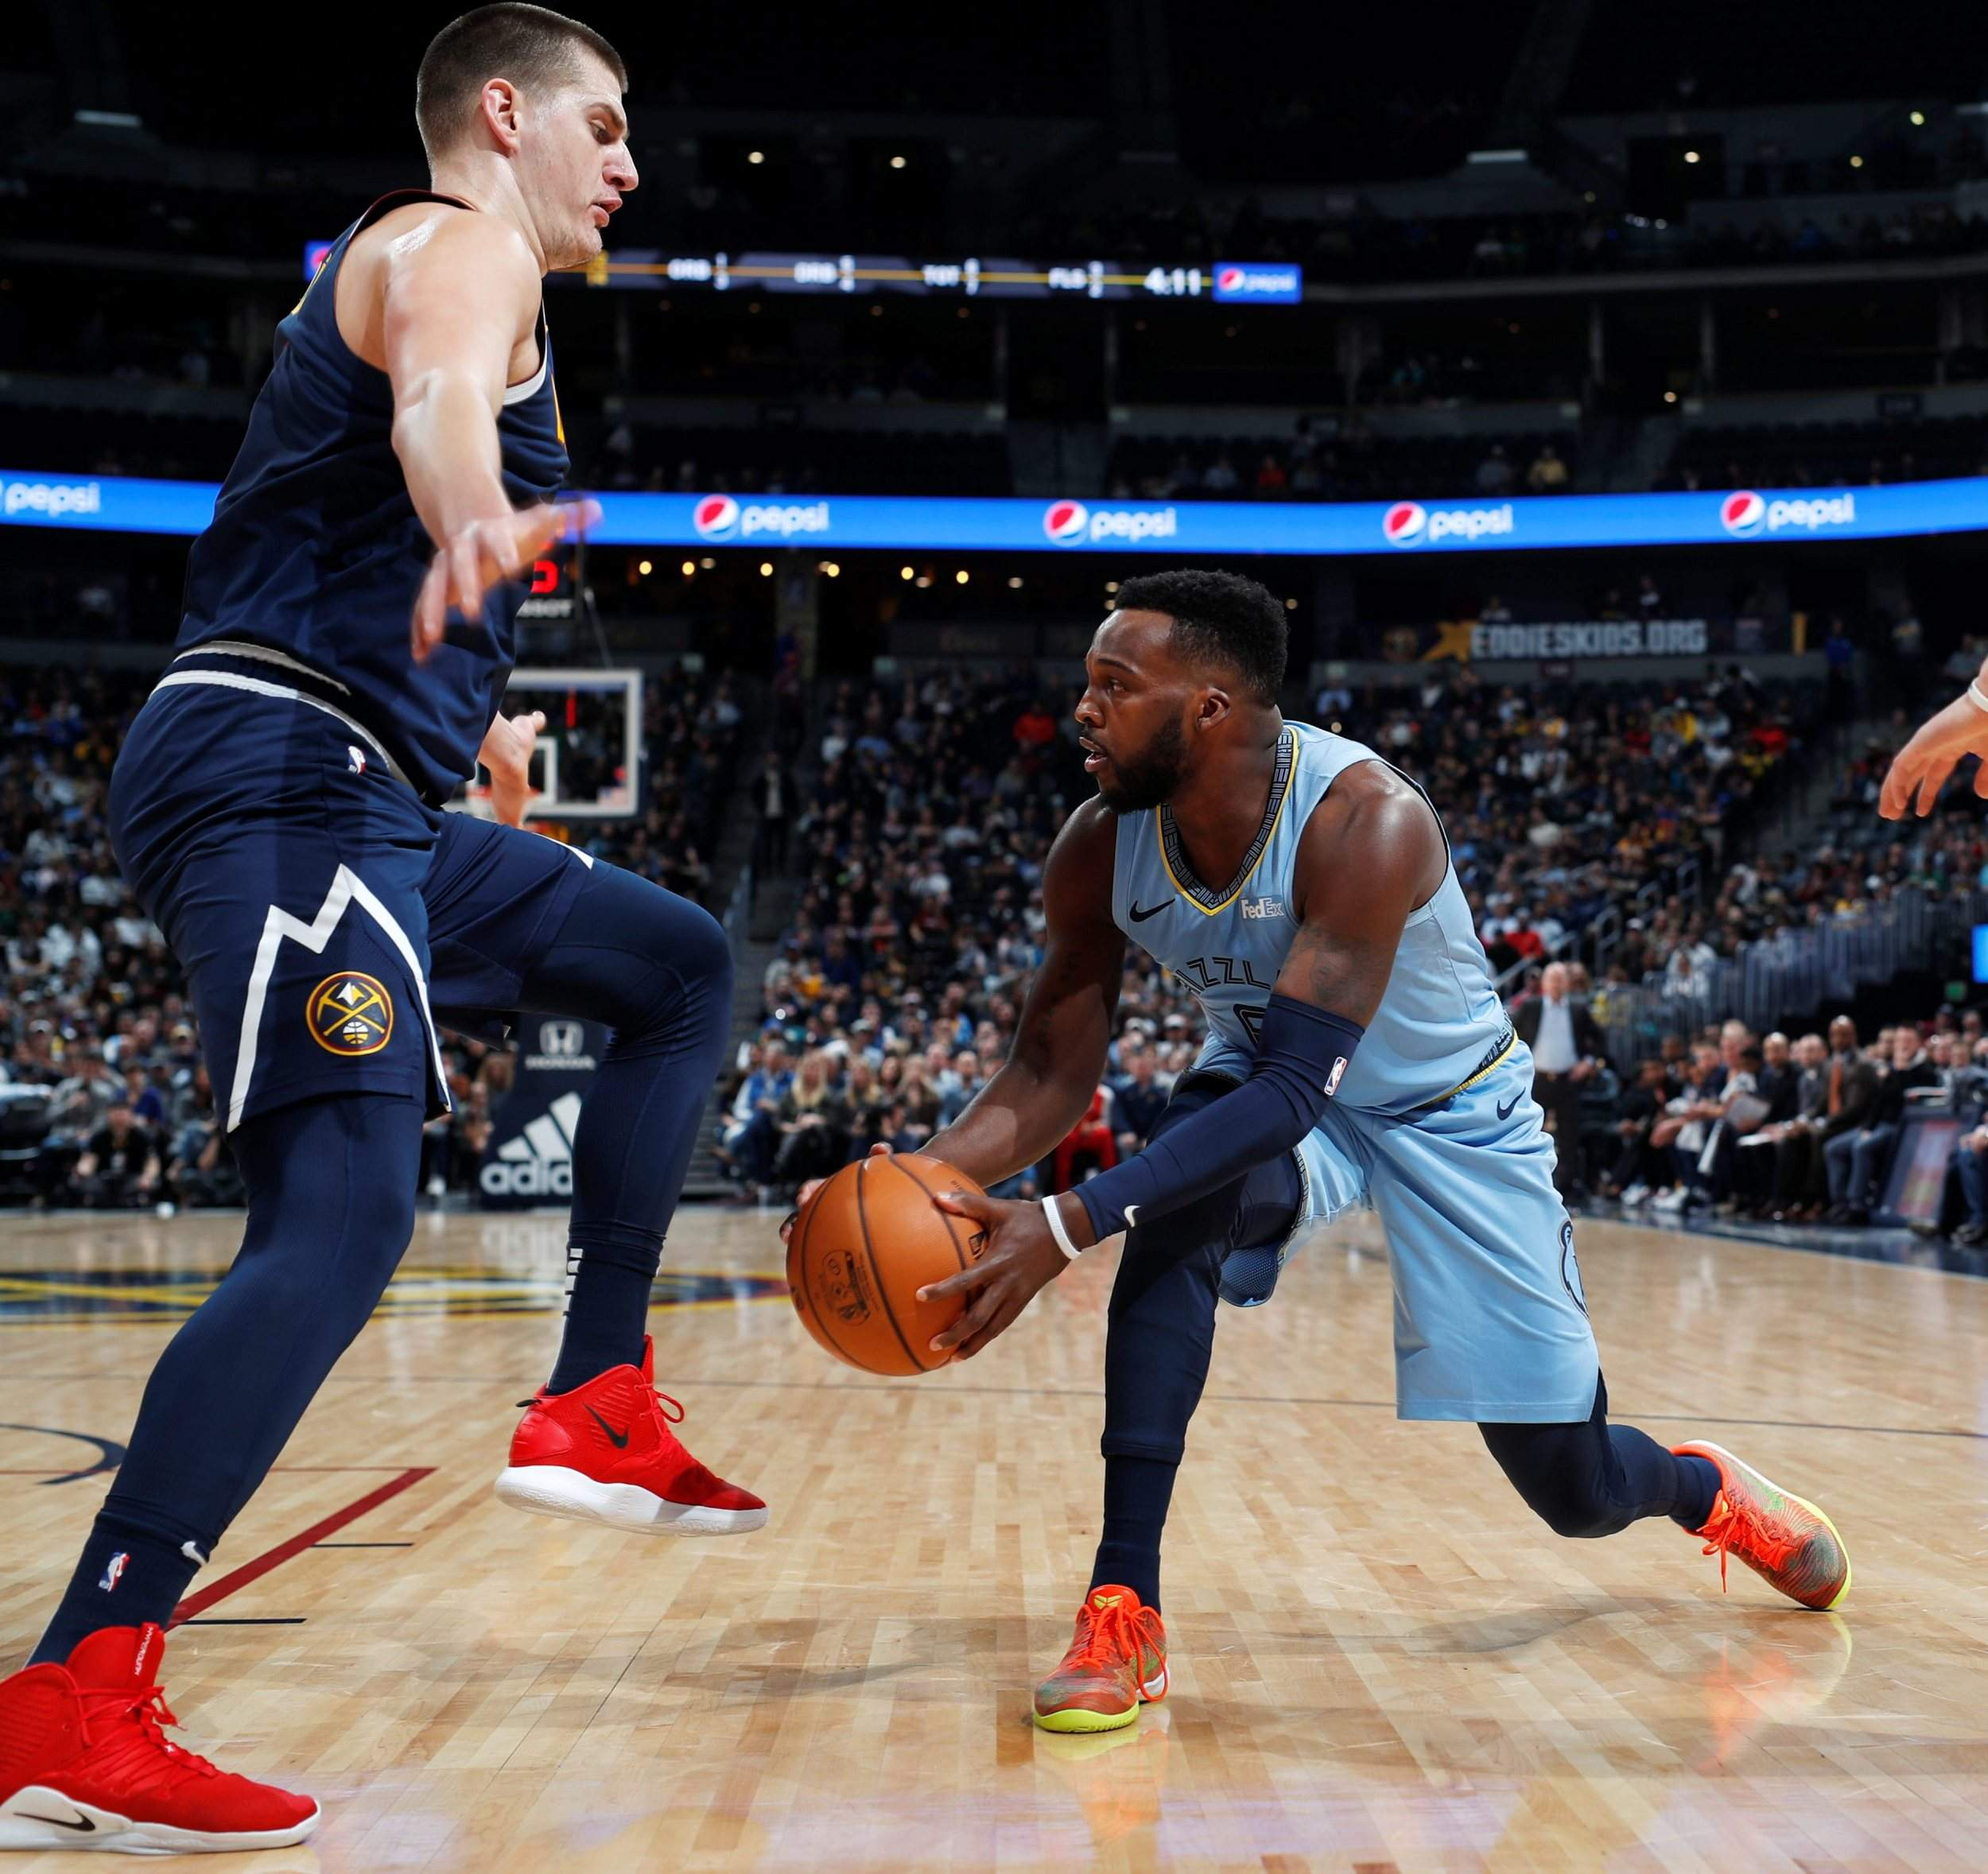 f2150ba12 Jokic leads way with 27 as Nuggets snap skid